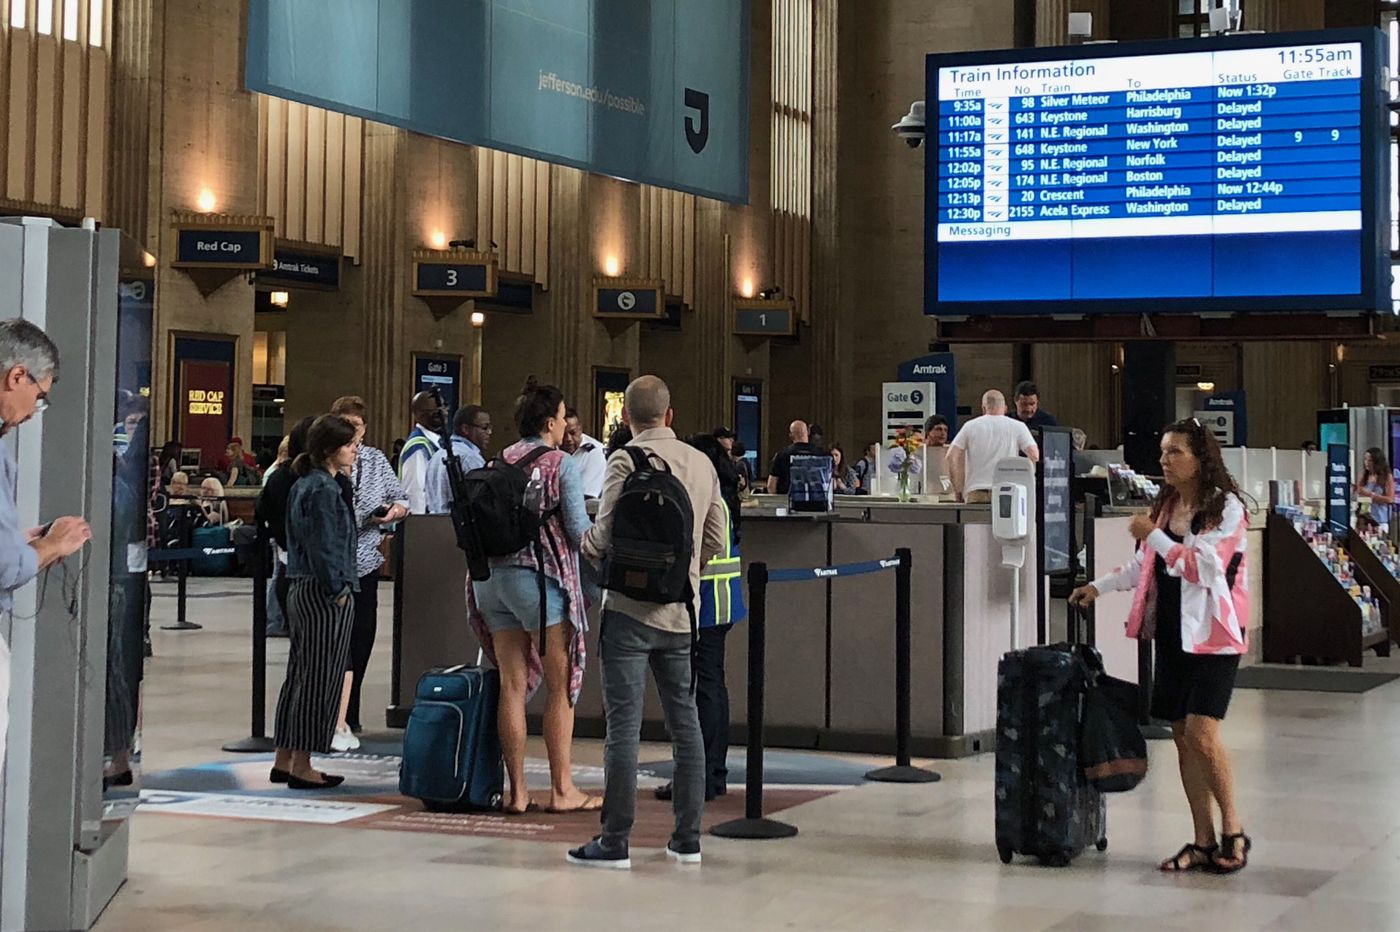 SEPTA, NJ Transit, and Amtrak trains running again after power problems